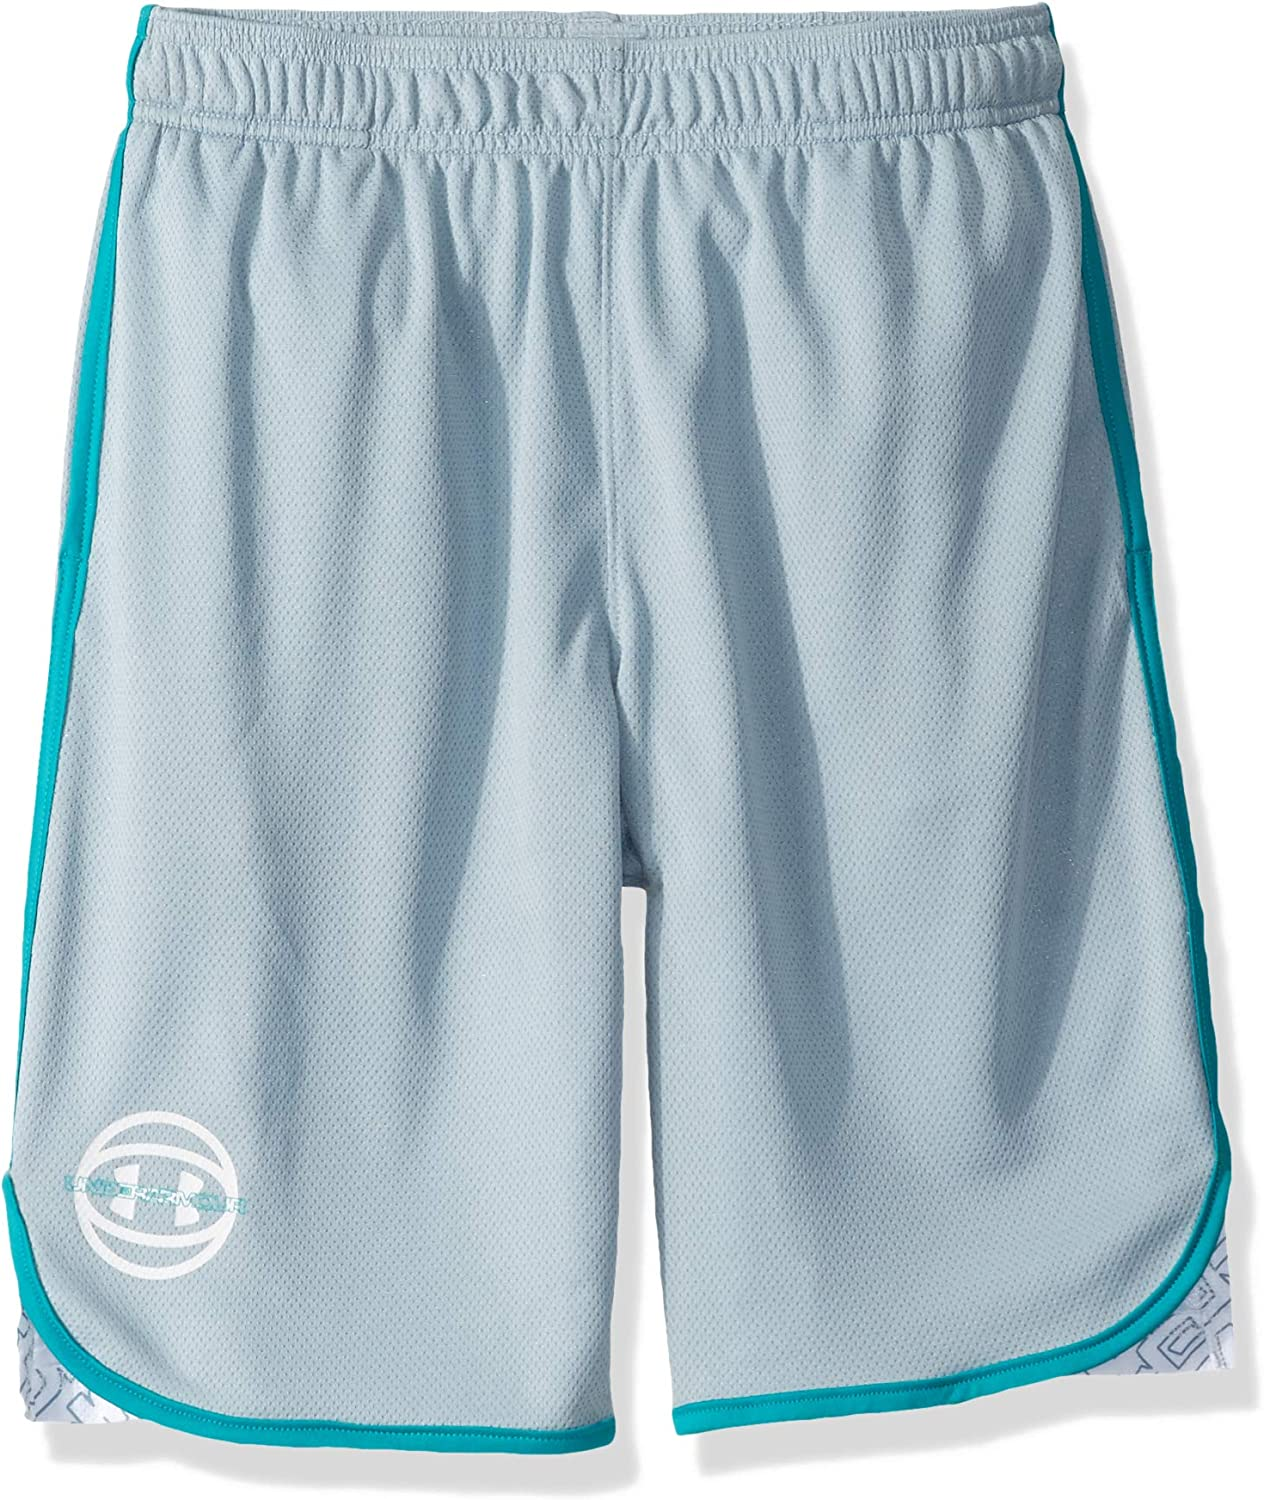 latest Under Armour Super special price Boys' Short Baseline